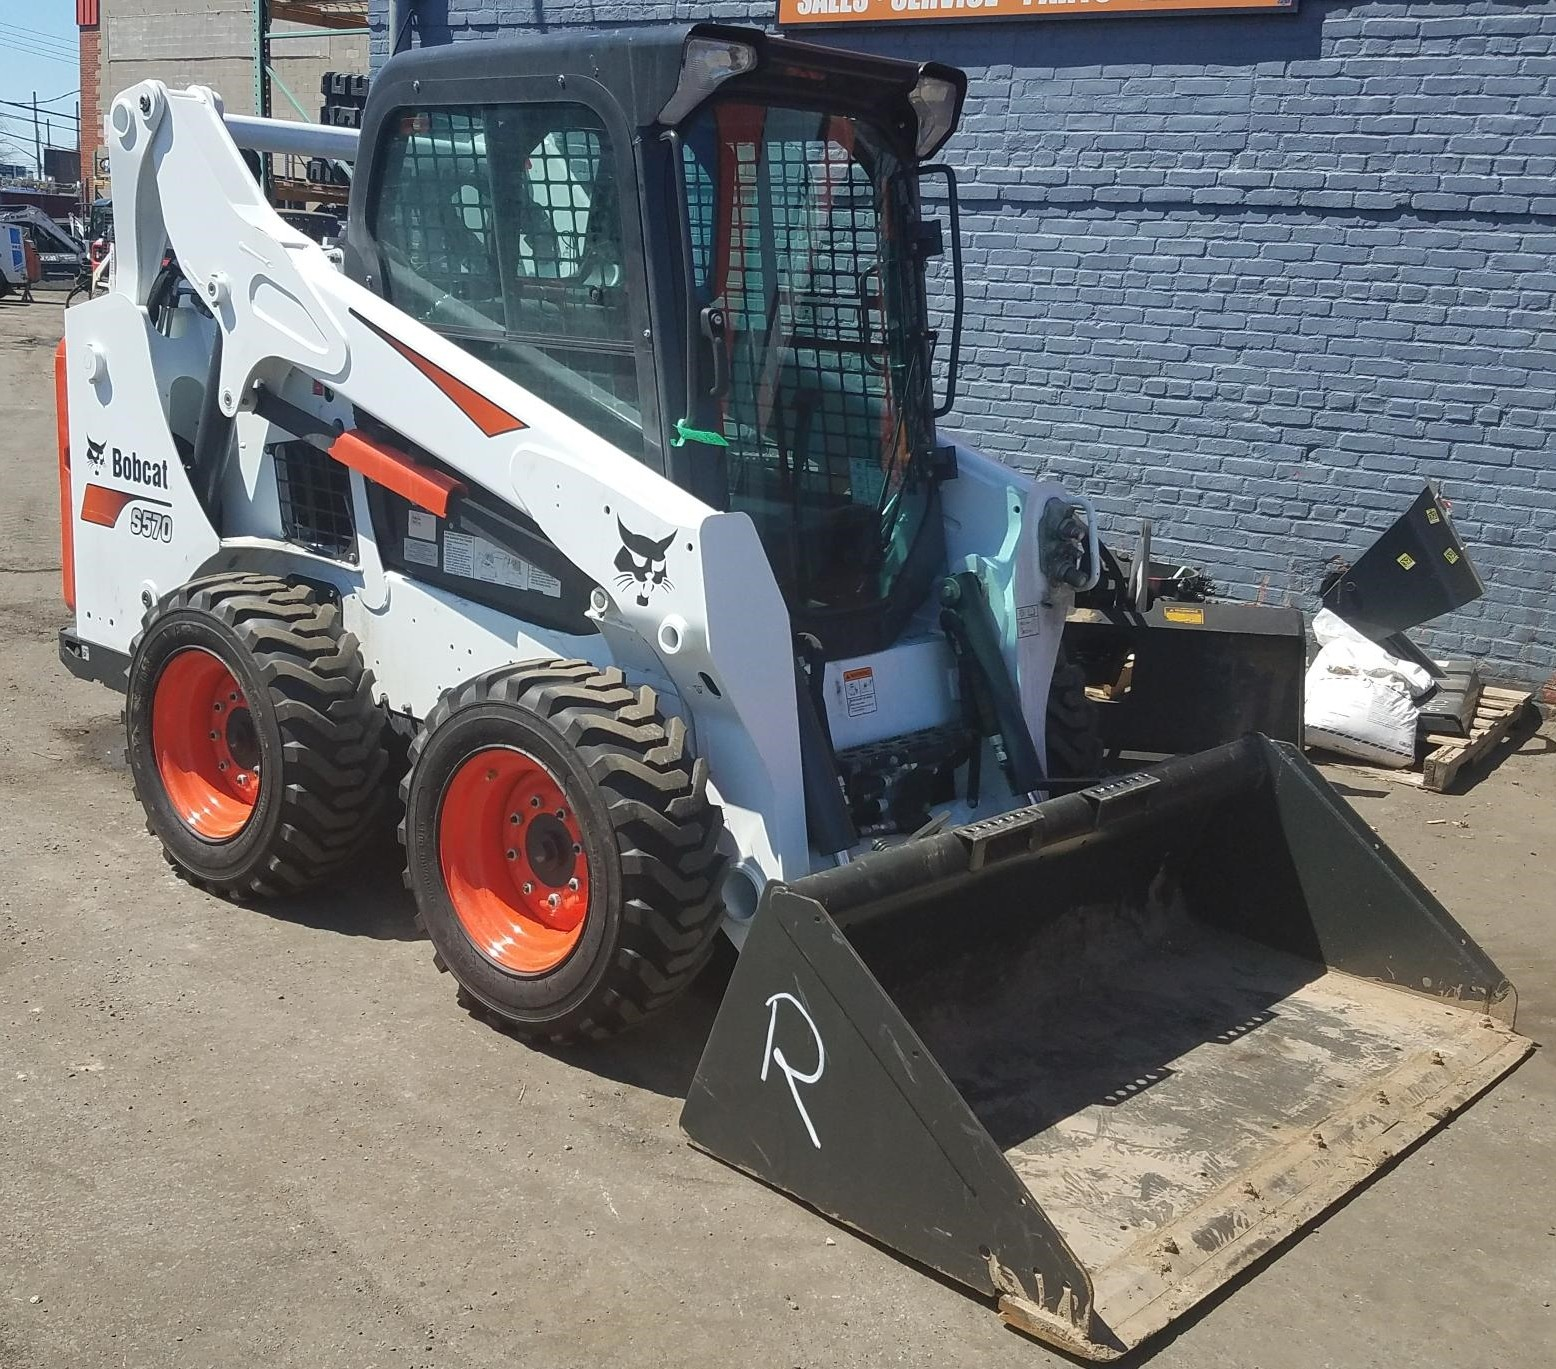 Pre Owned Bobcat Inventory For Sale Bobcat Of New York In Maspeth